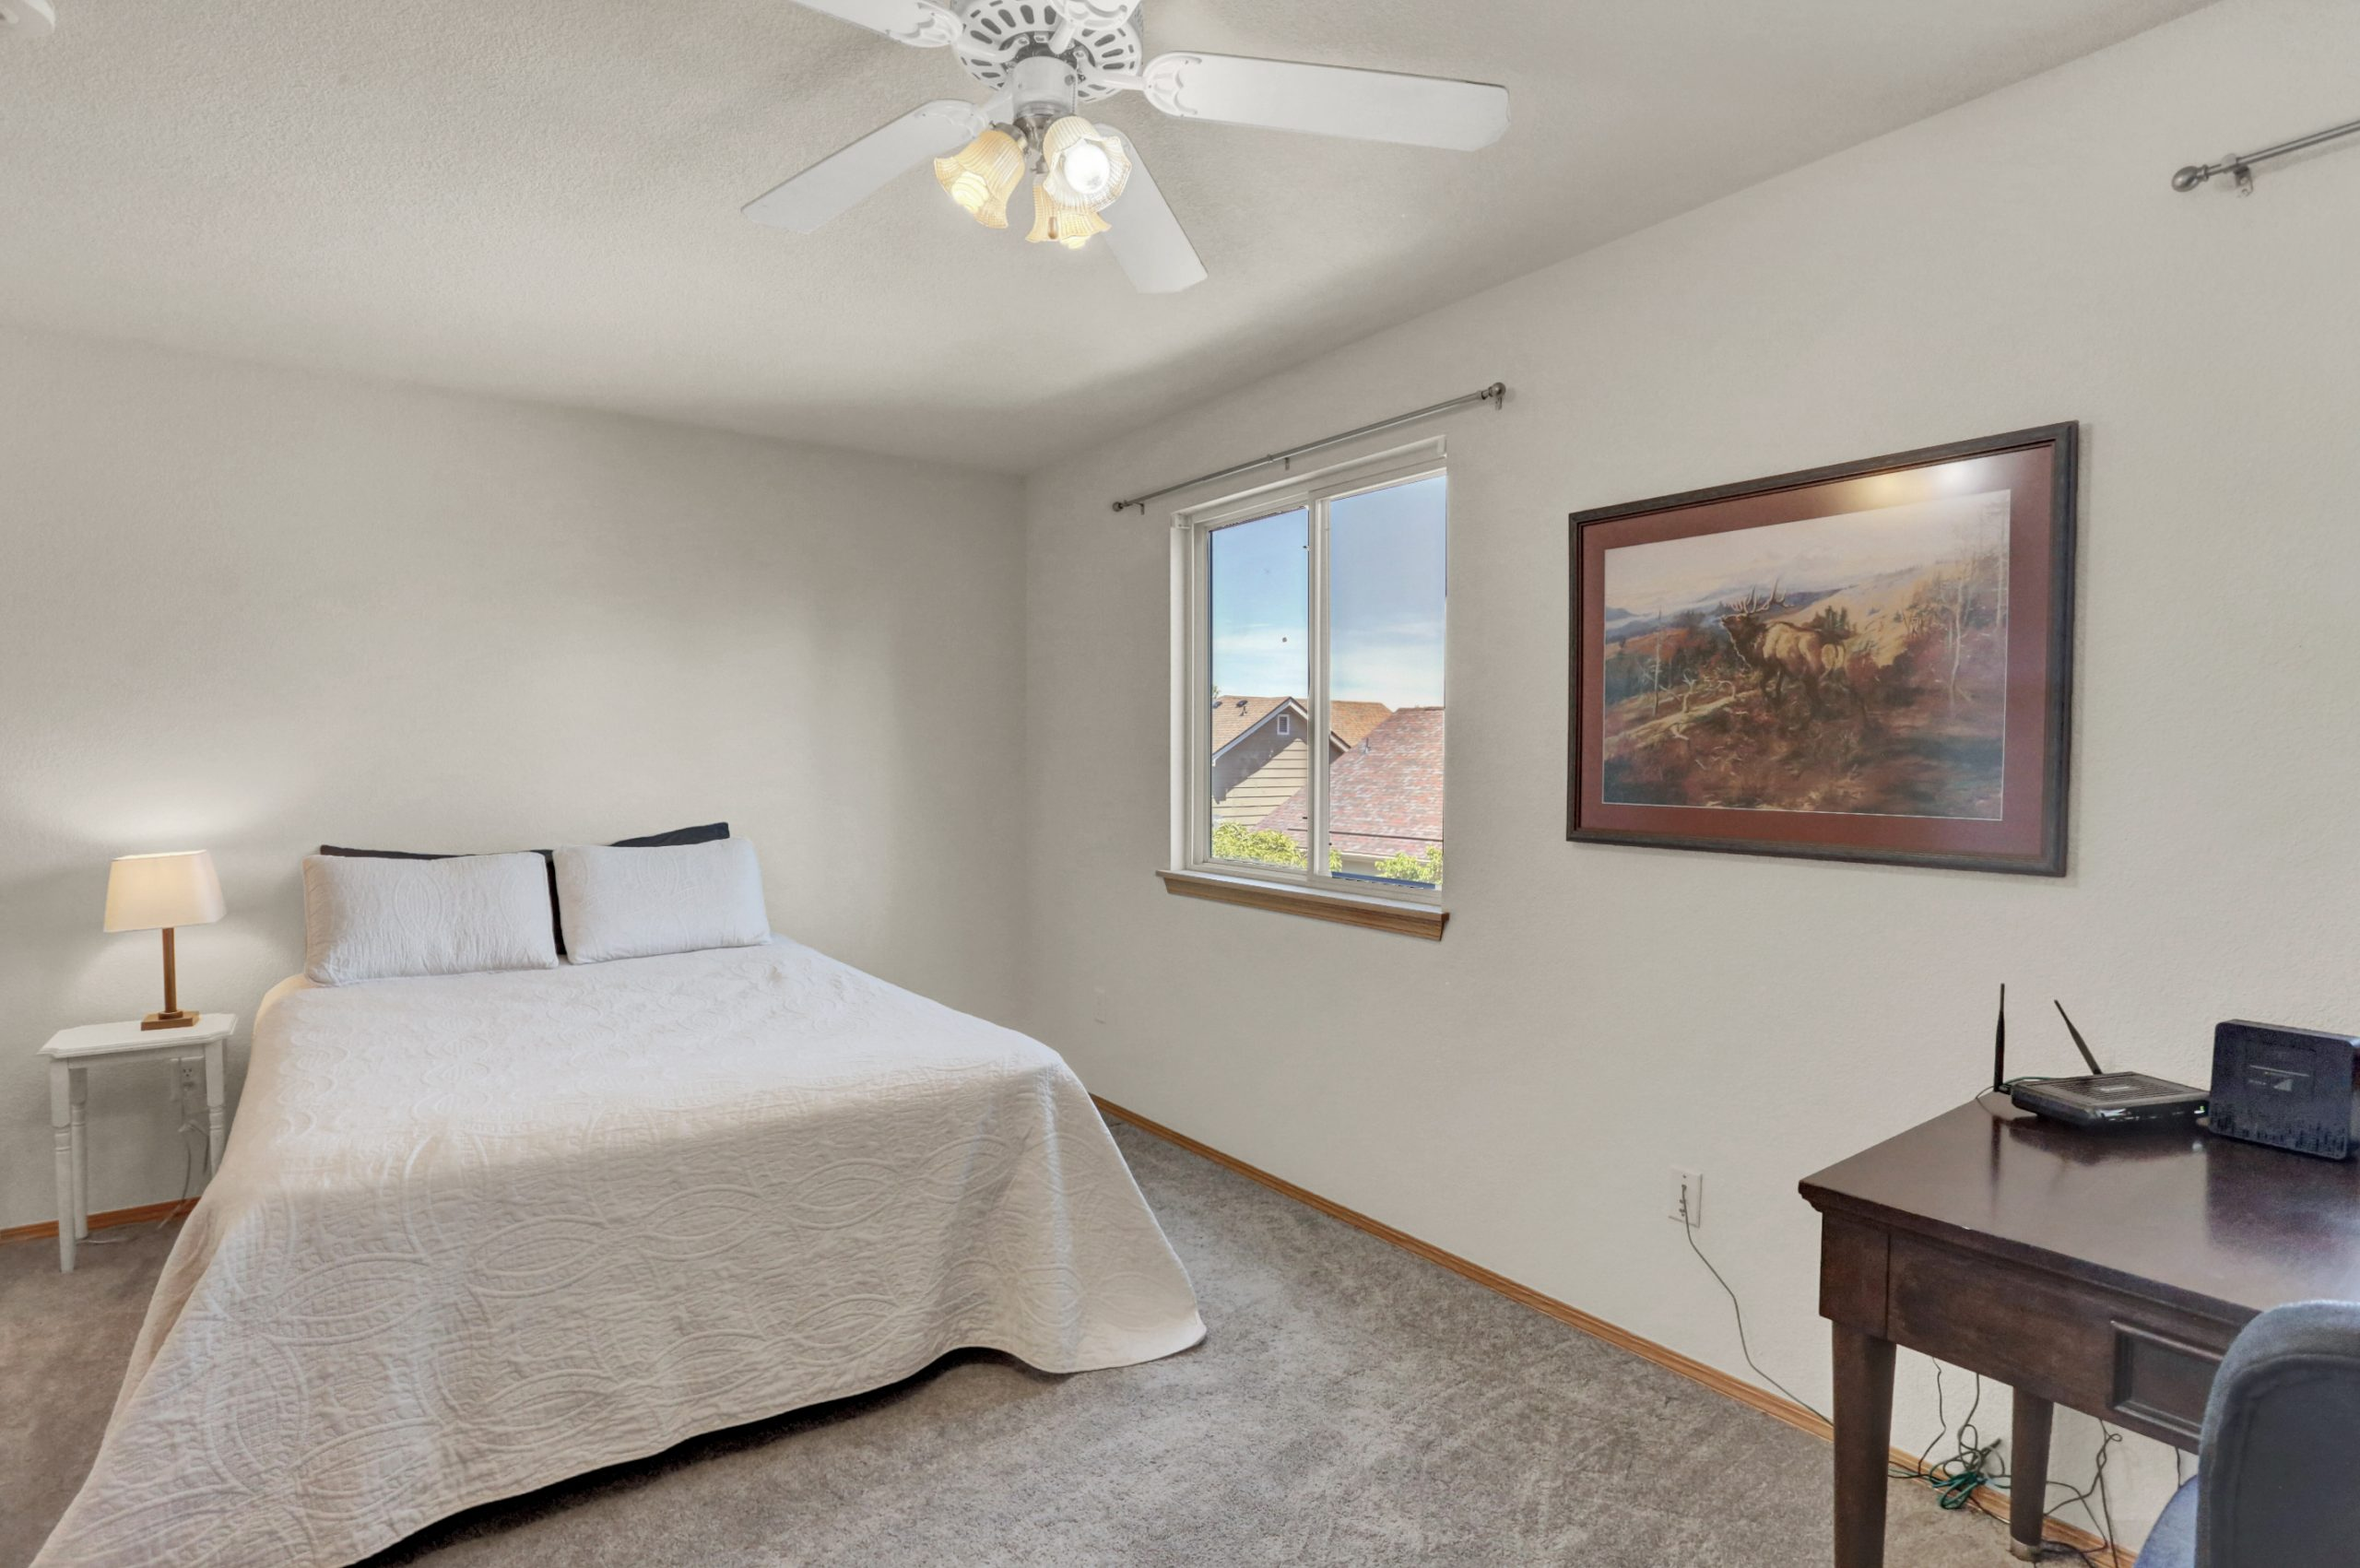 REAL ESTATE LISTING: 10502 Falcon St Firestone Bedroom #2